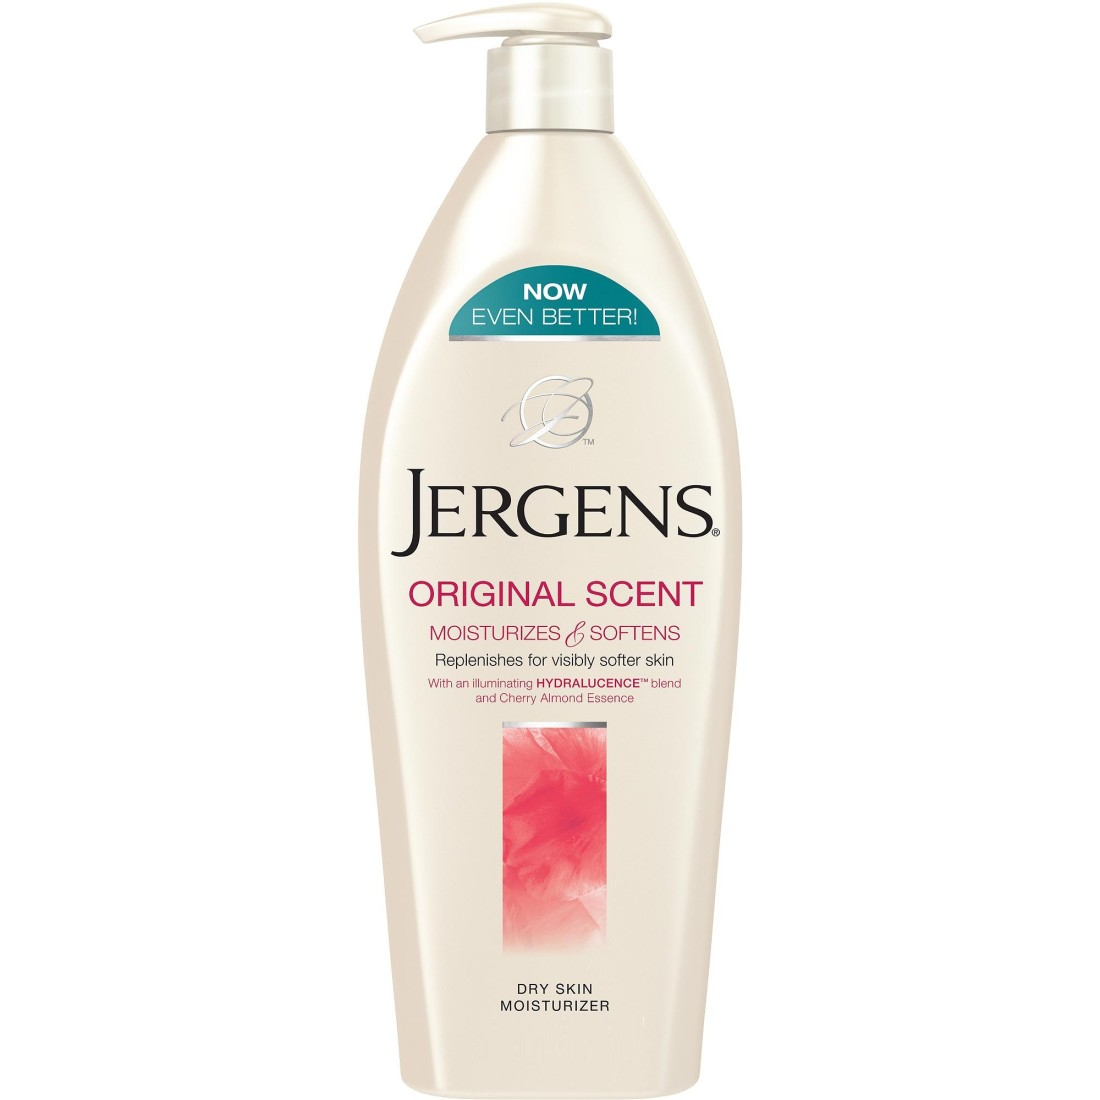 Jergens Original Scent Moisturizes & Softens Body Lotion